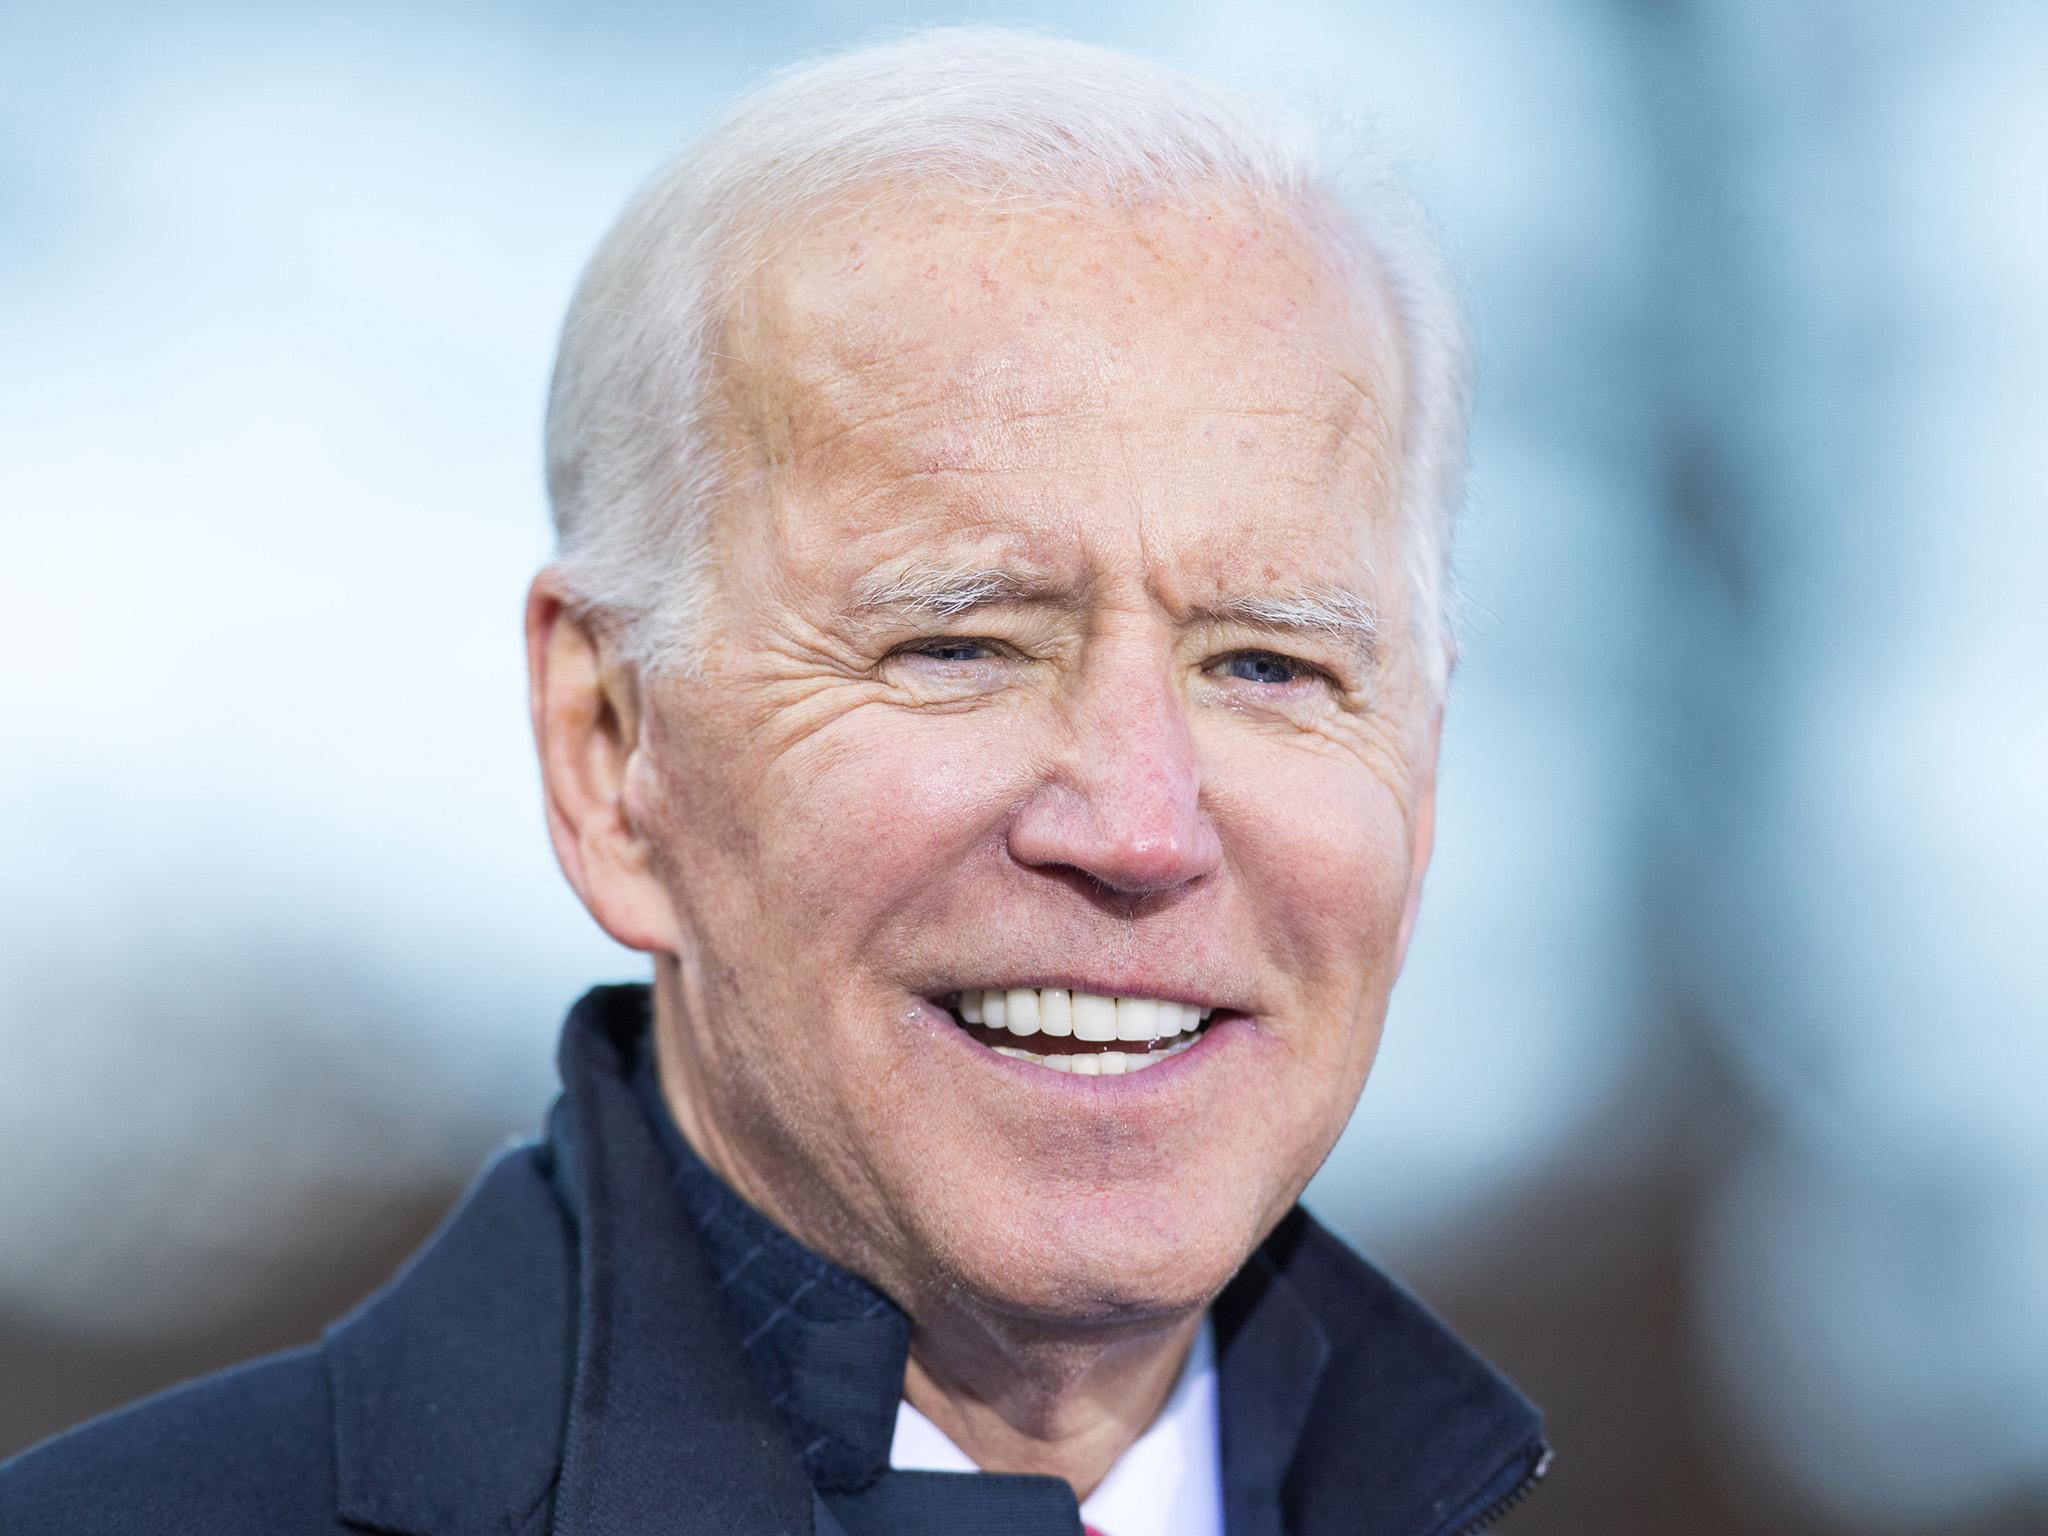 North Korea calls Joe Biden a 'rabid dog' nearing death 3